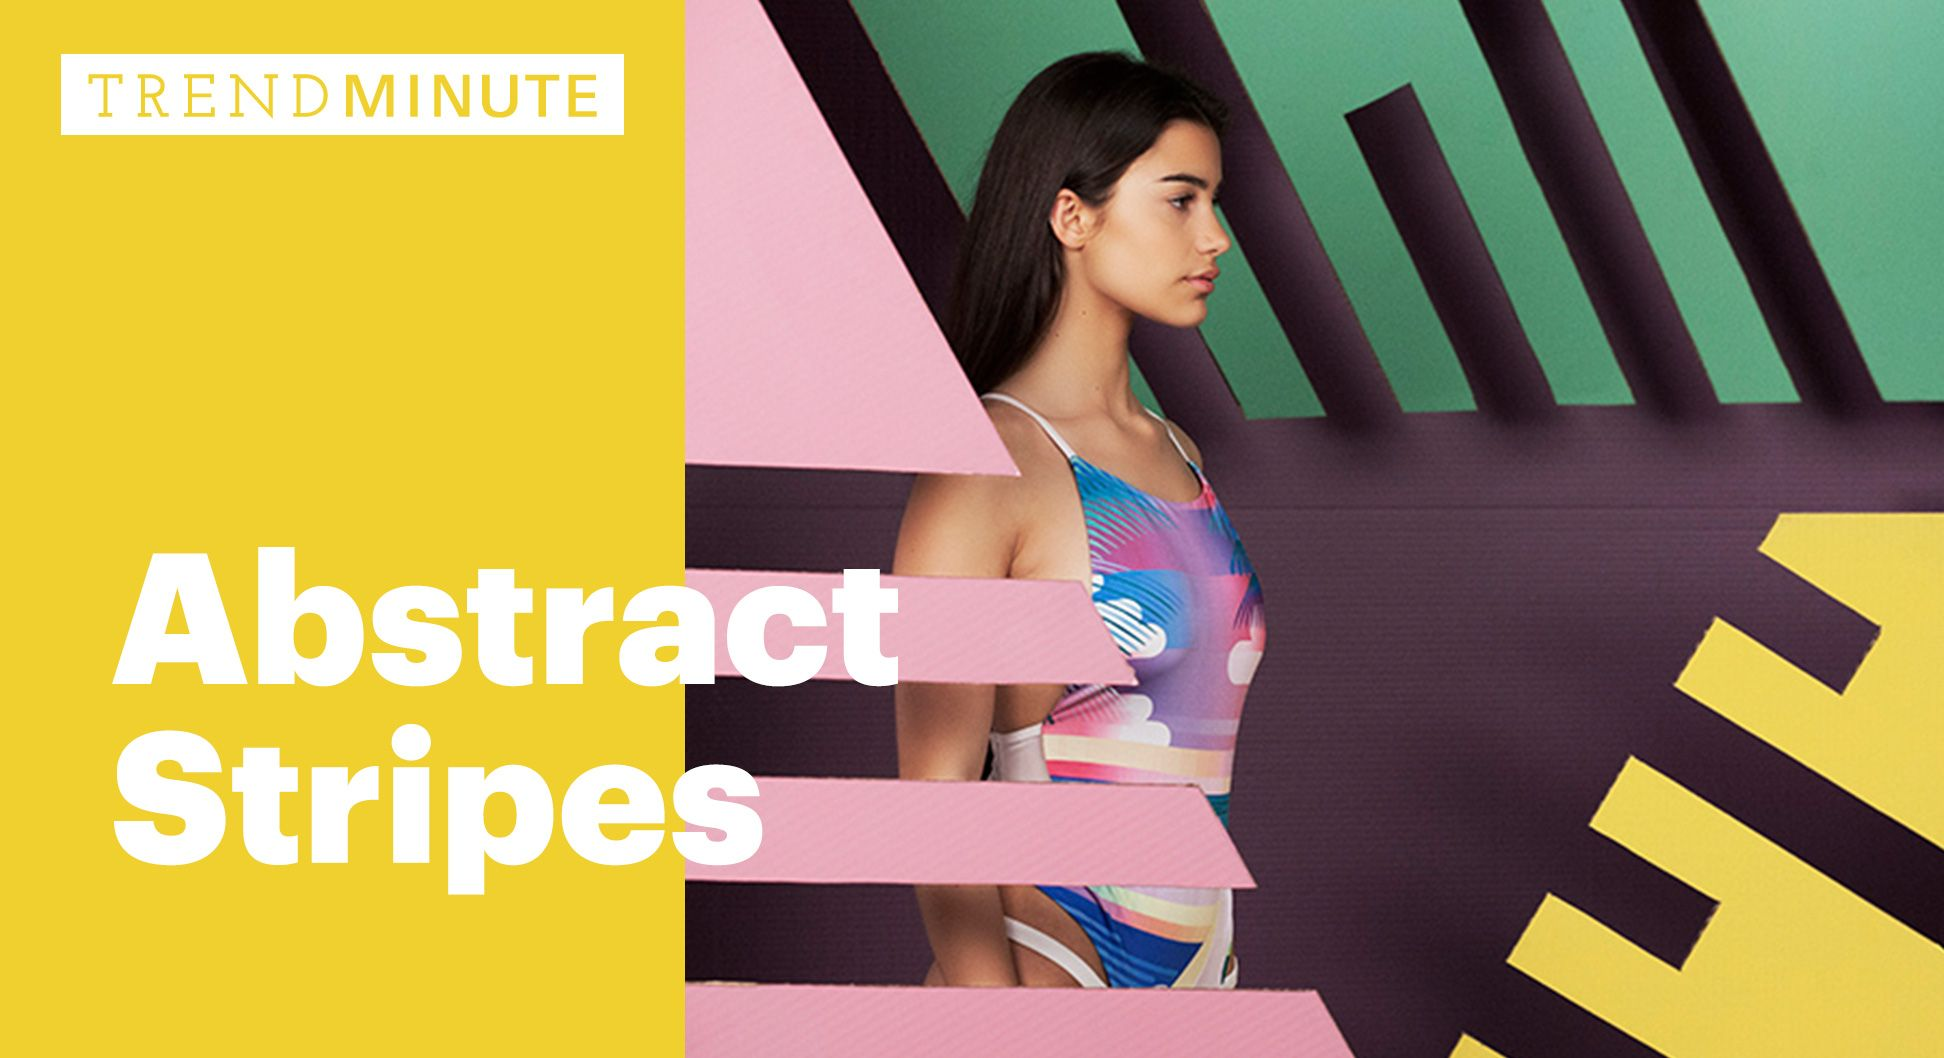 Trend Minute: Abstract Stripes via @wgsn_official